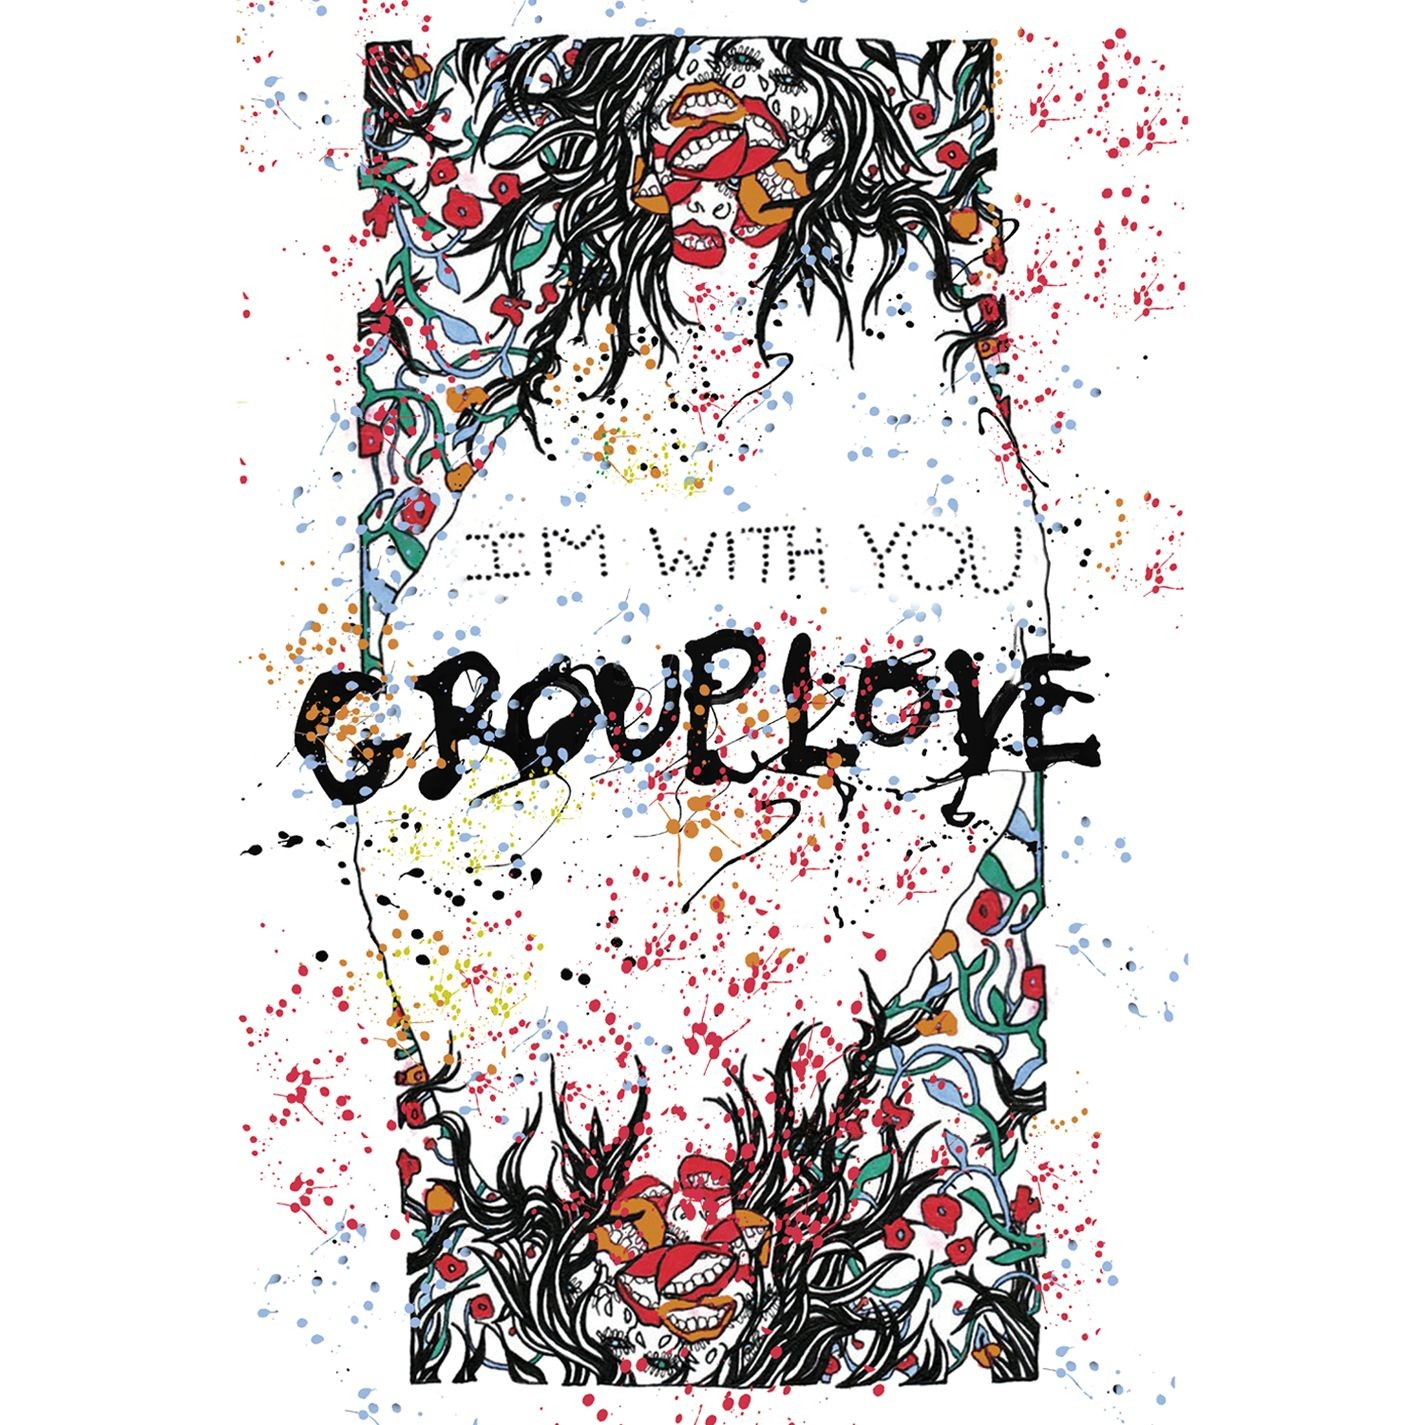 Grouplove - I'm With You EP (AE)